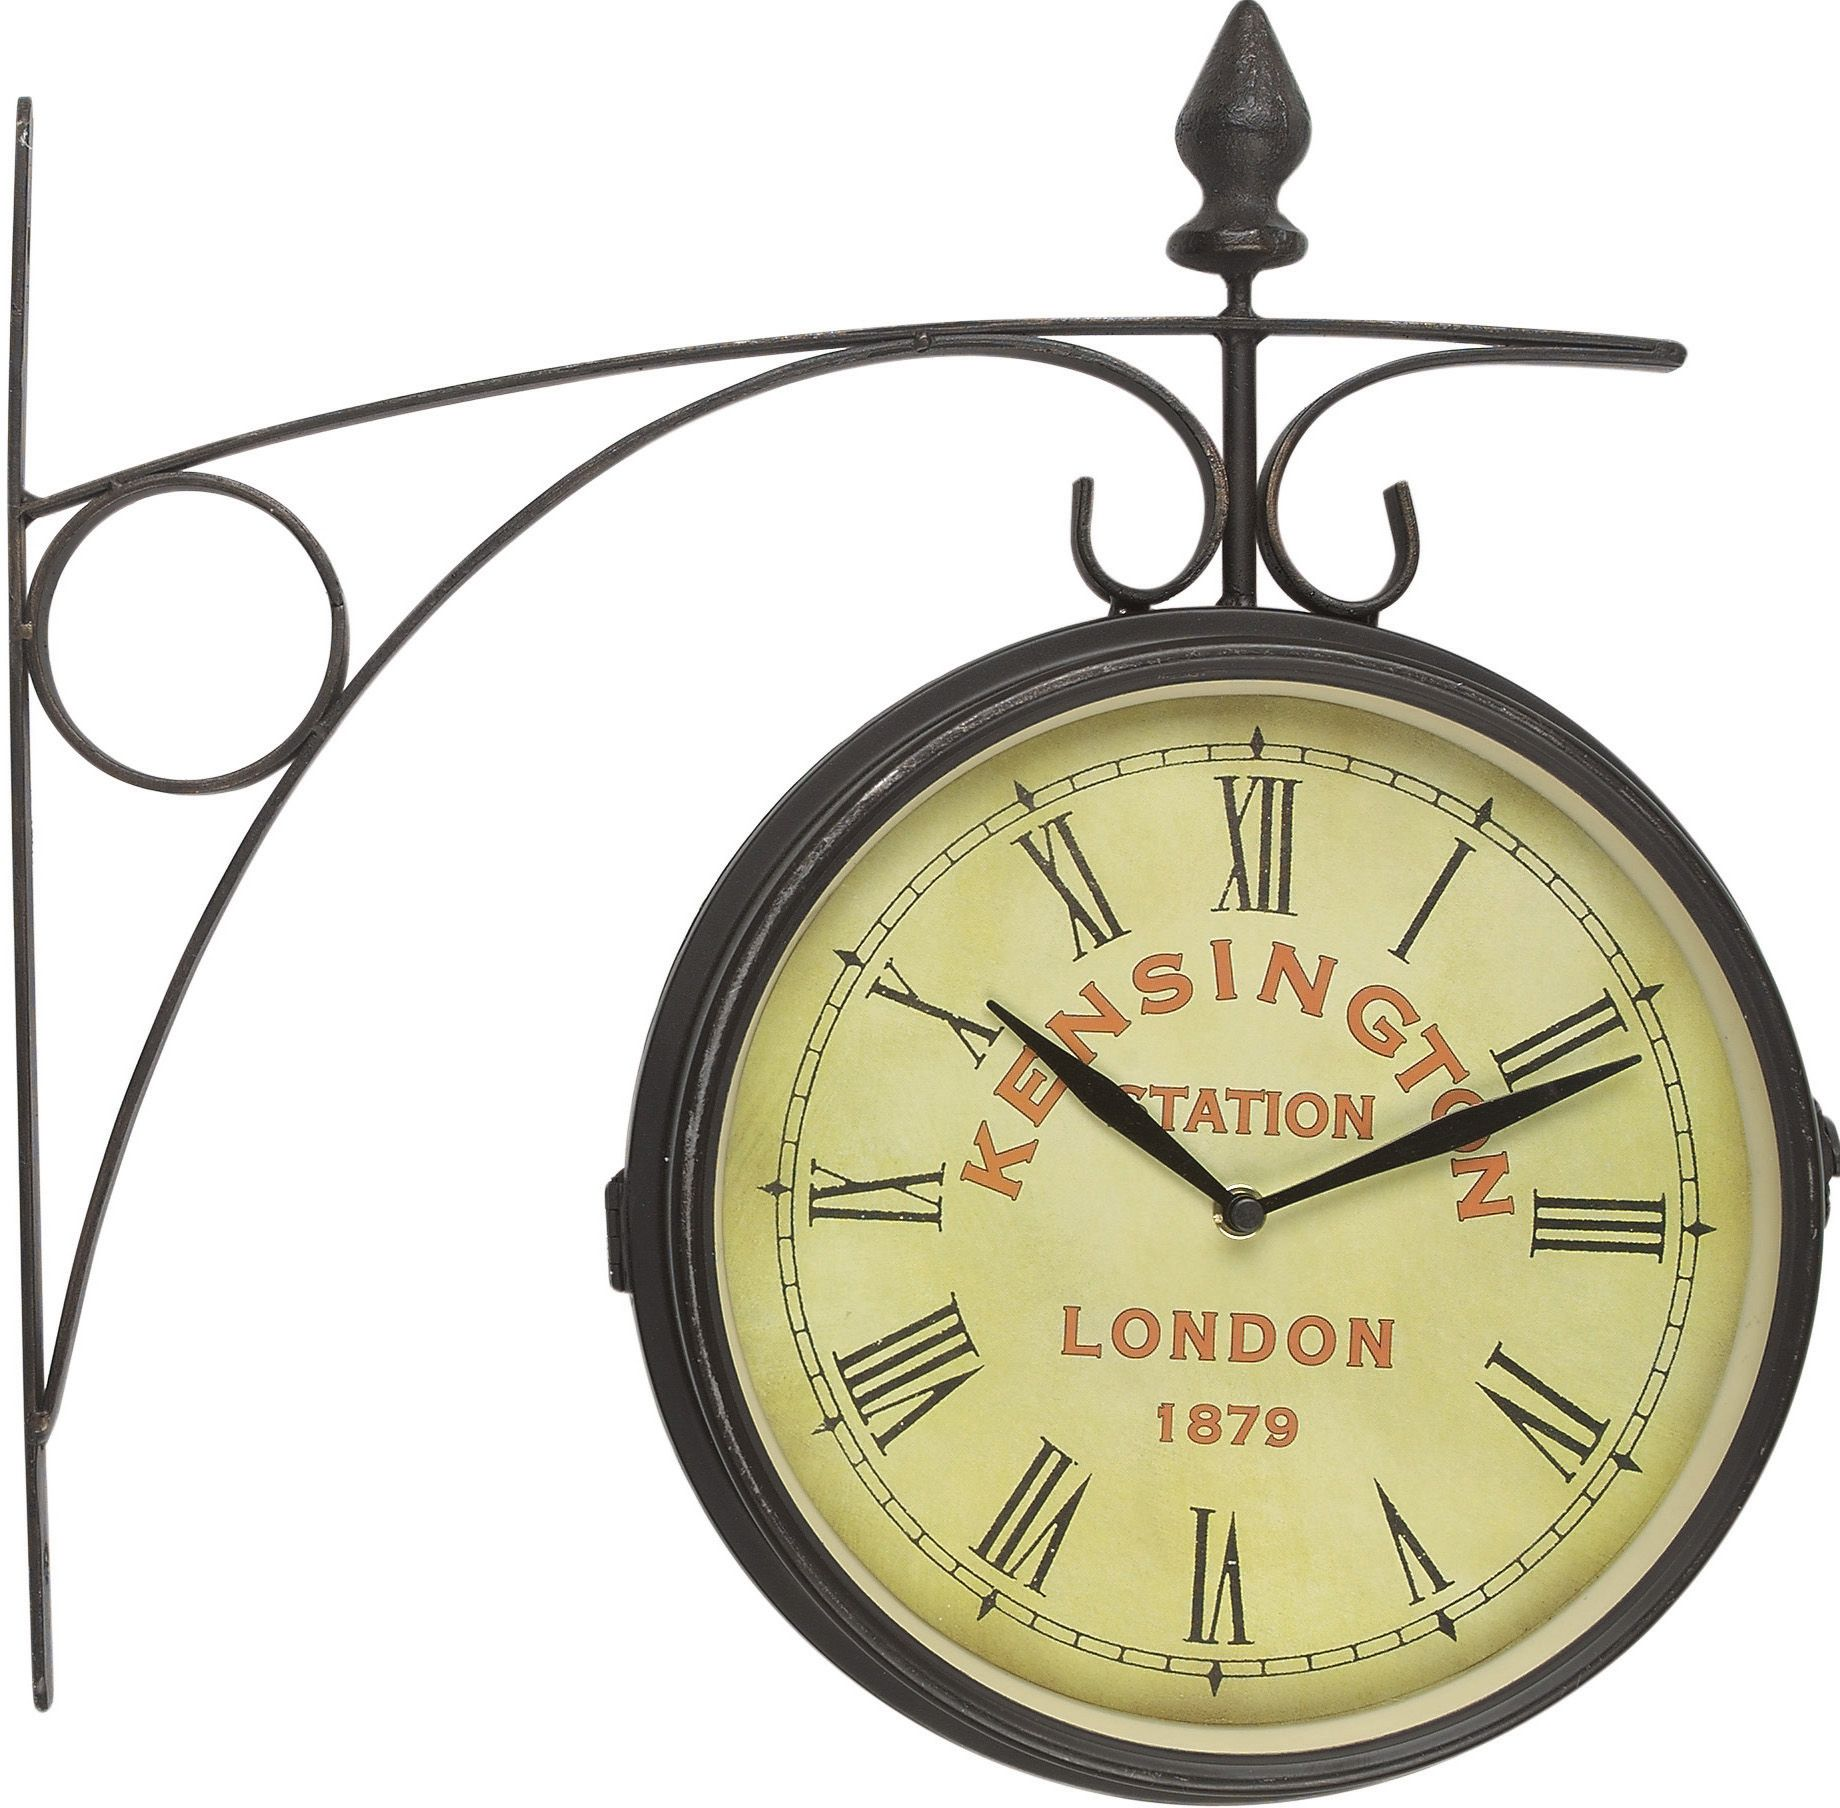 kare design wanduhr old london station im look einer antiken bahnhofsuhr aus eisen und glas mit. Black Bedroom Furniture Sets. Home Design Ideas